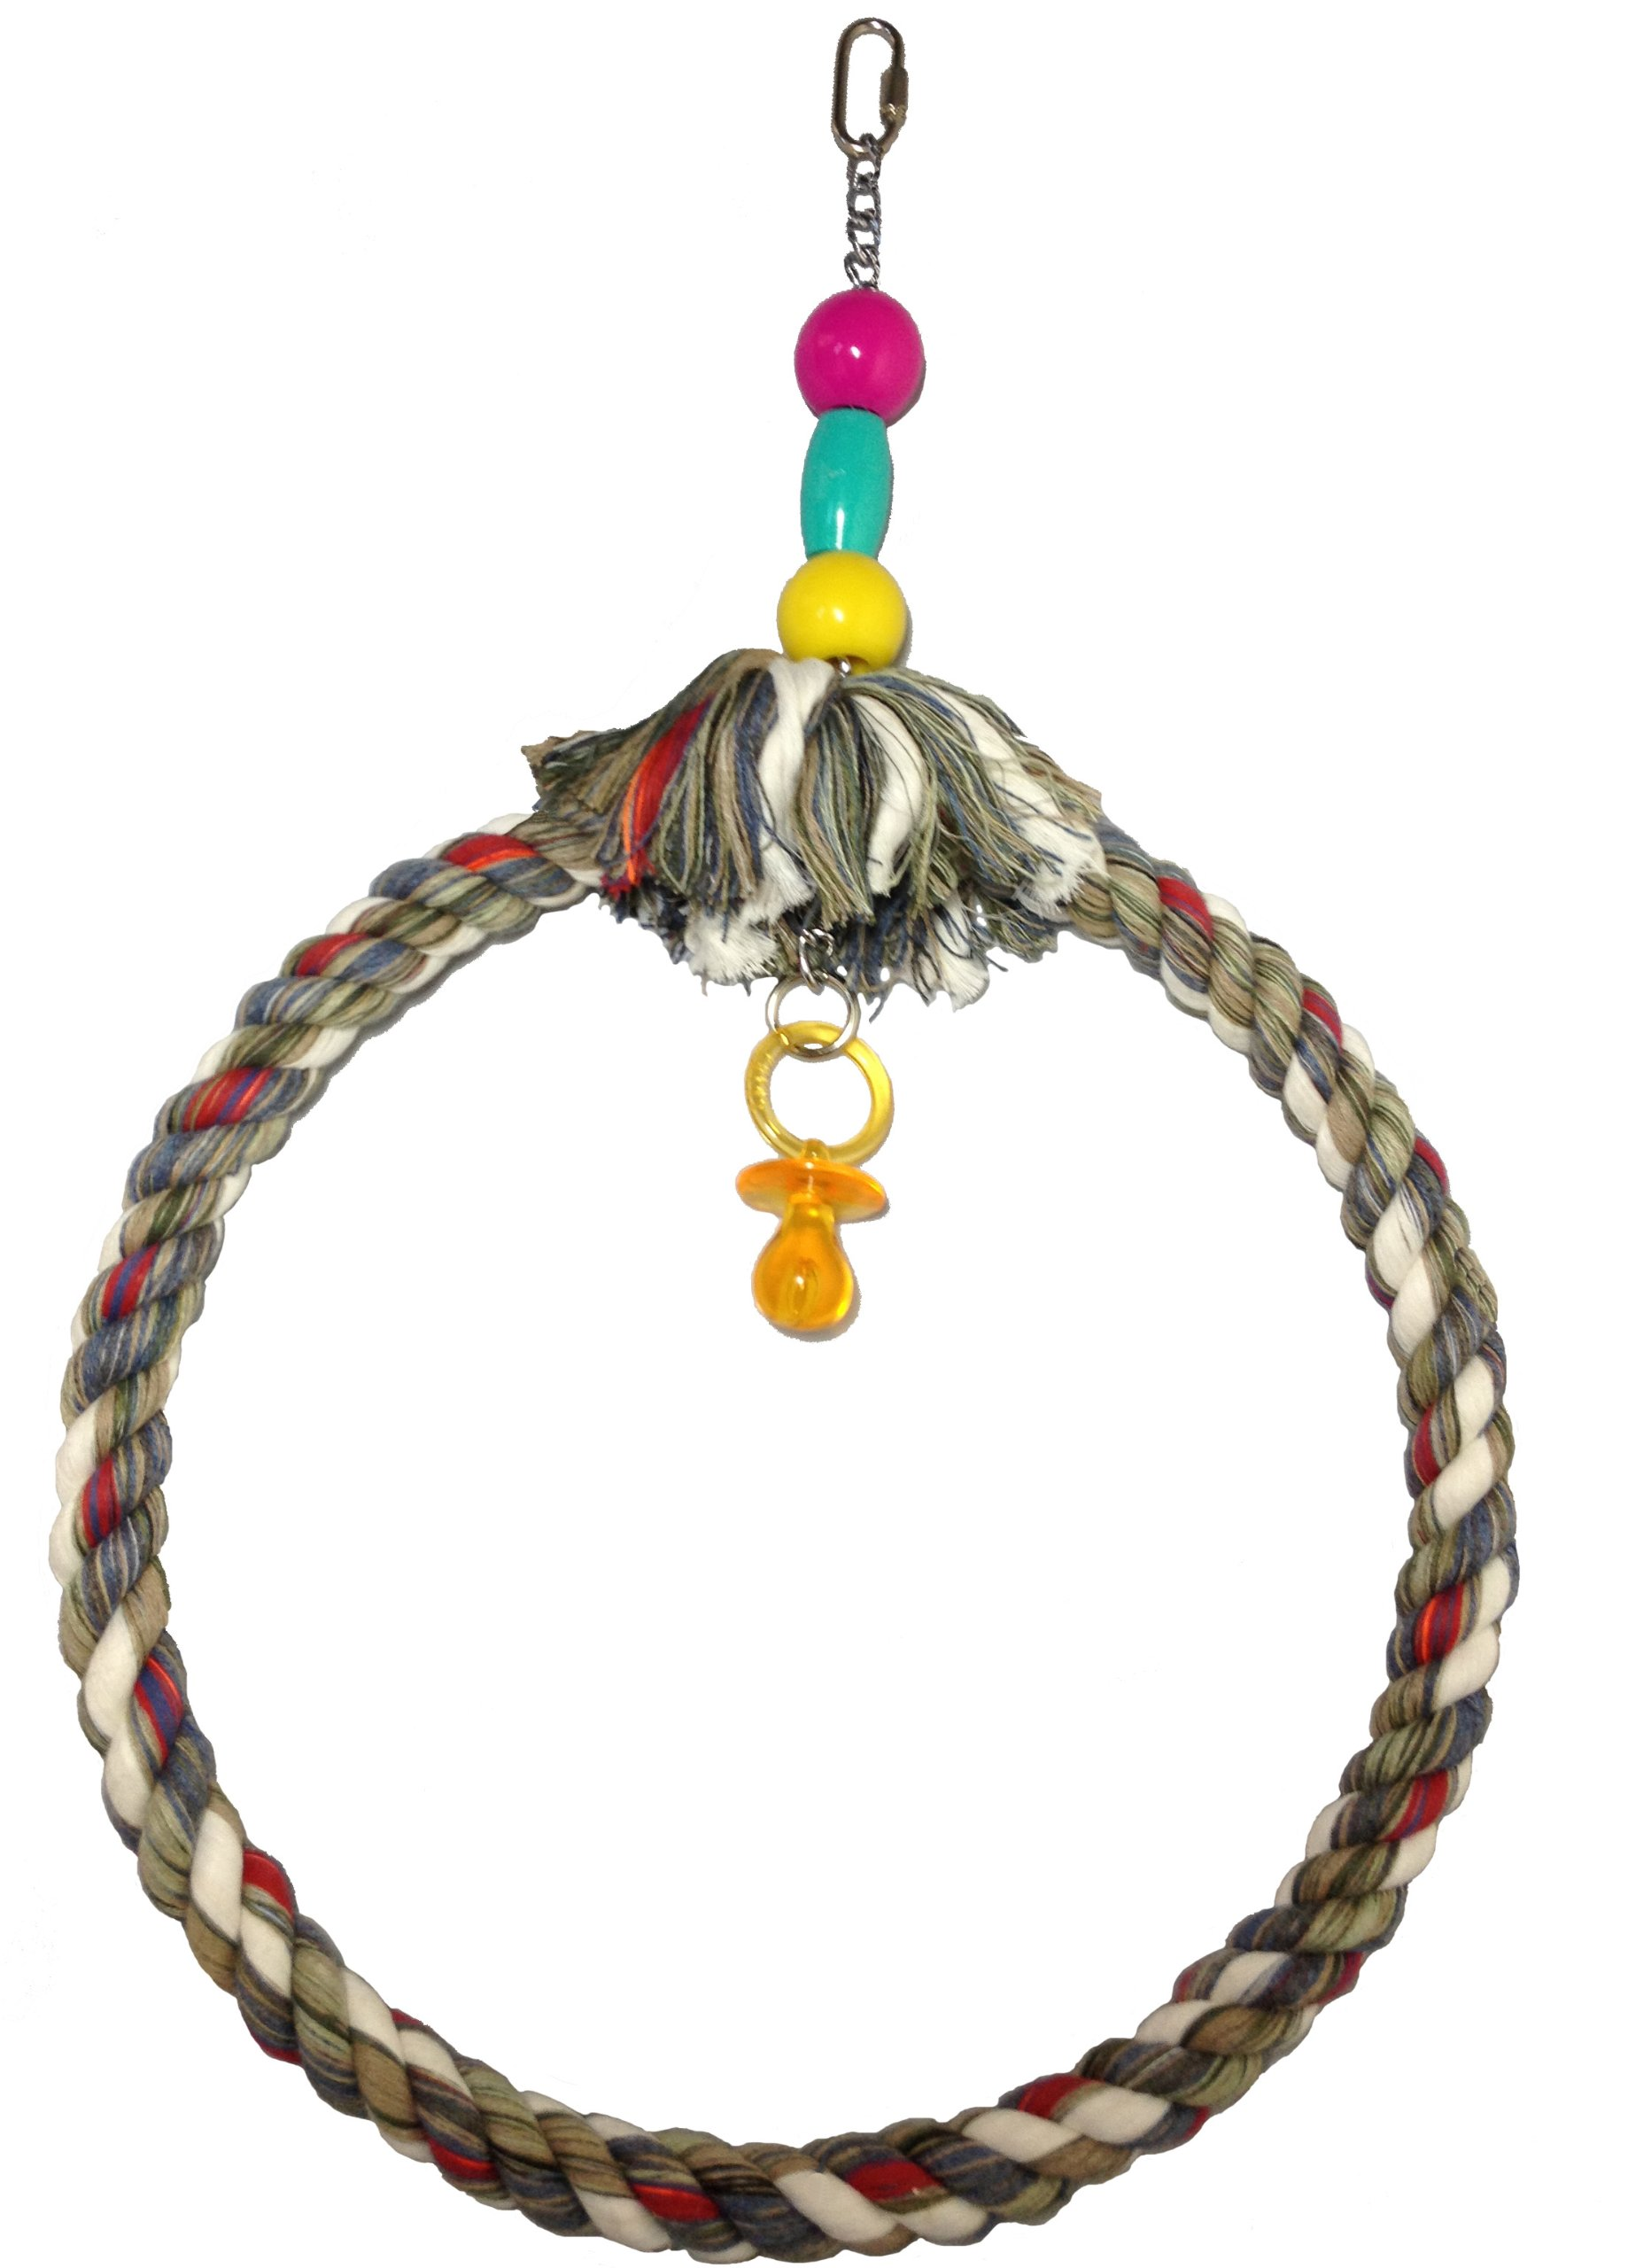 FeatherSmart Parrot Bird Rope Swing (Large by FeatherSmart Parrot Bird Rope Swing